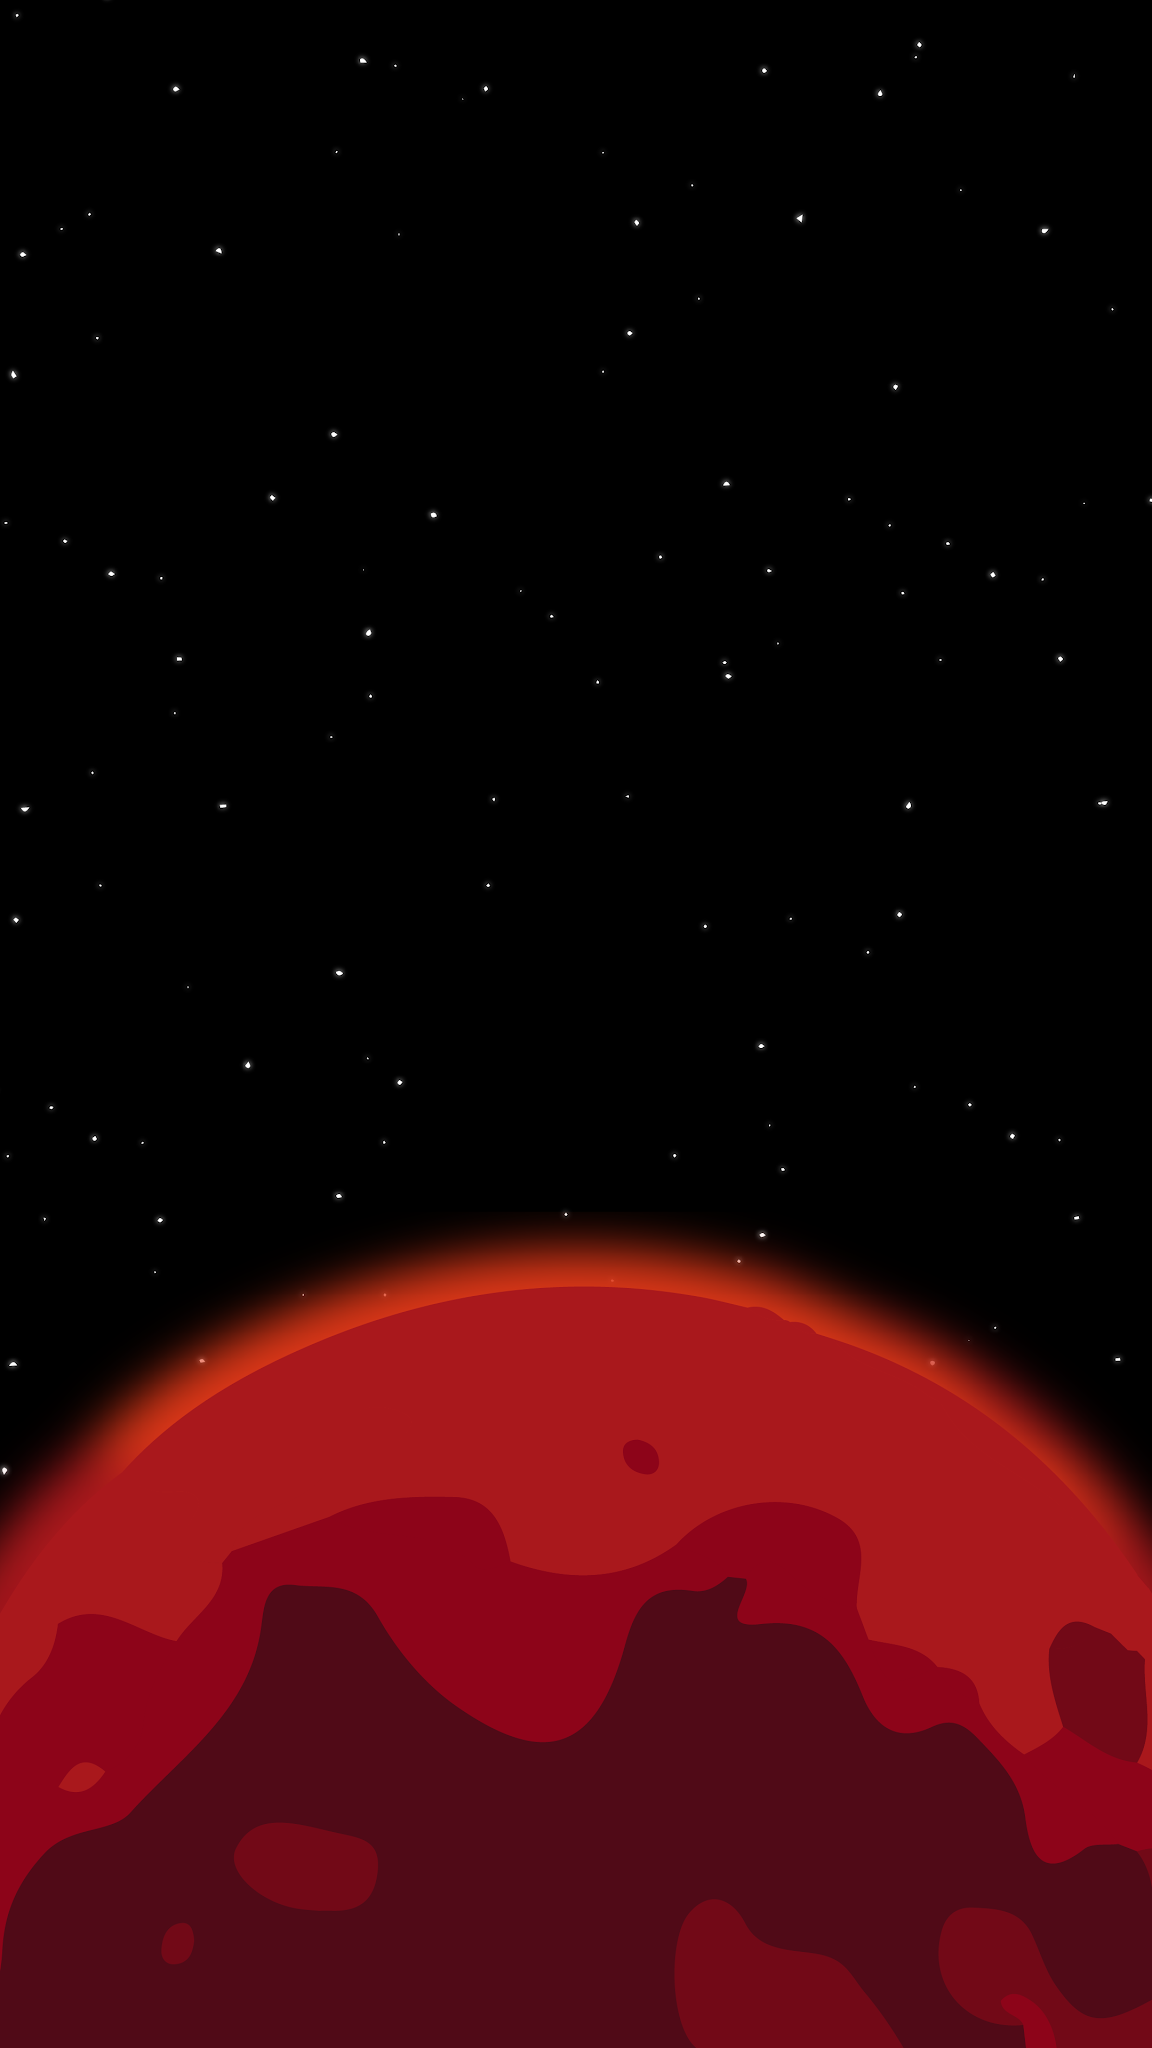 amoled wallpaper of a galaxy true black and a red planet or mars